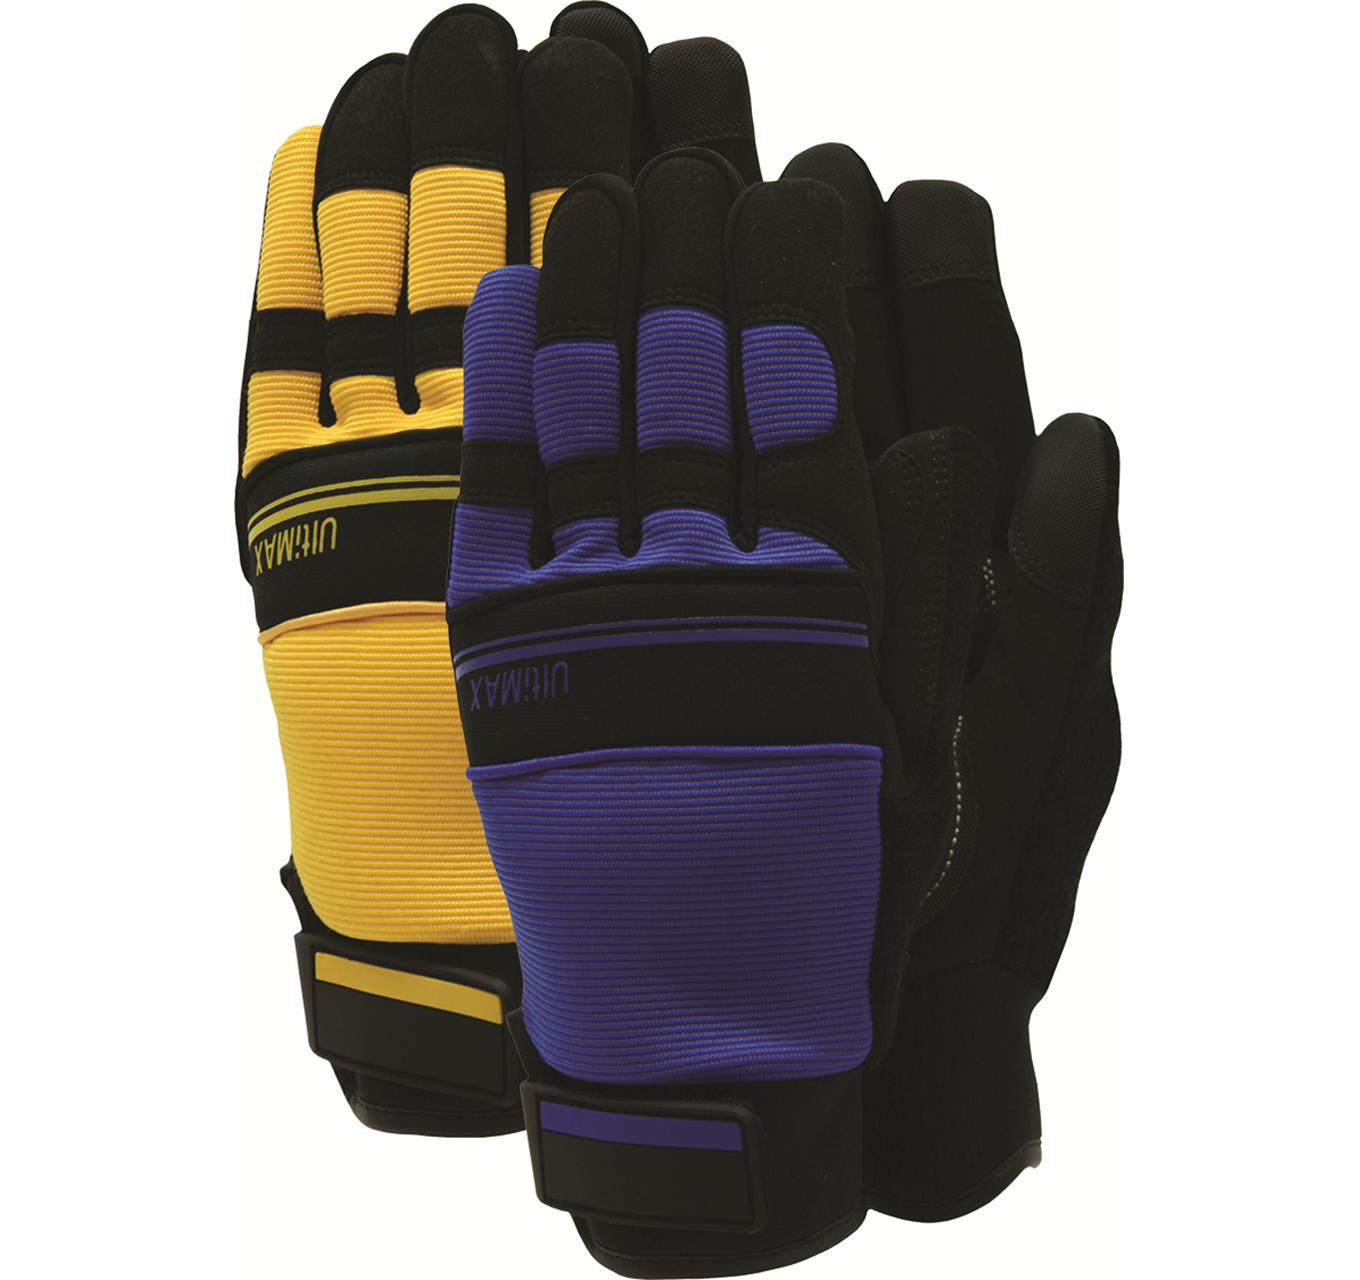 Deluxe Ultimax Gloves L